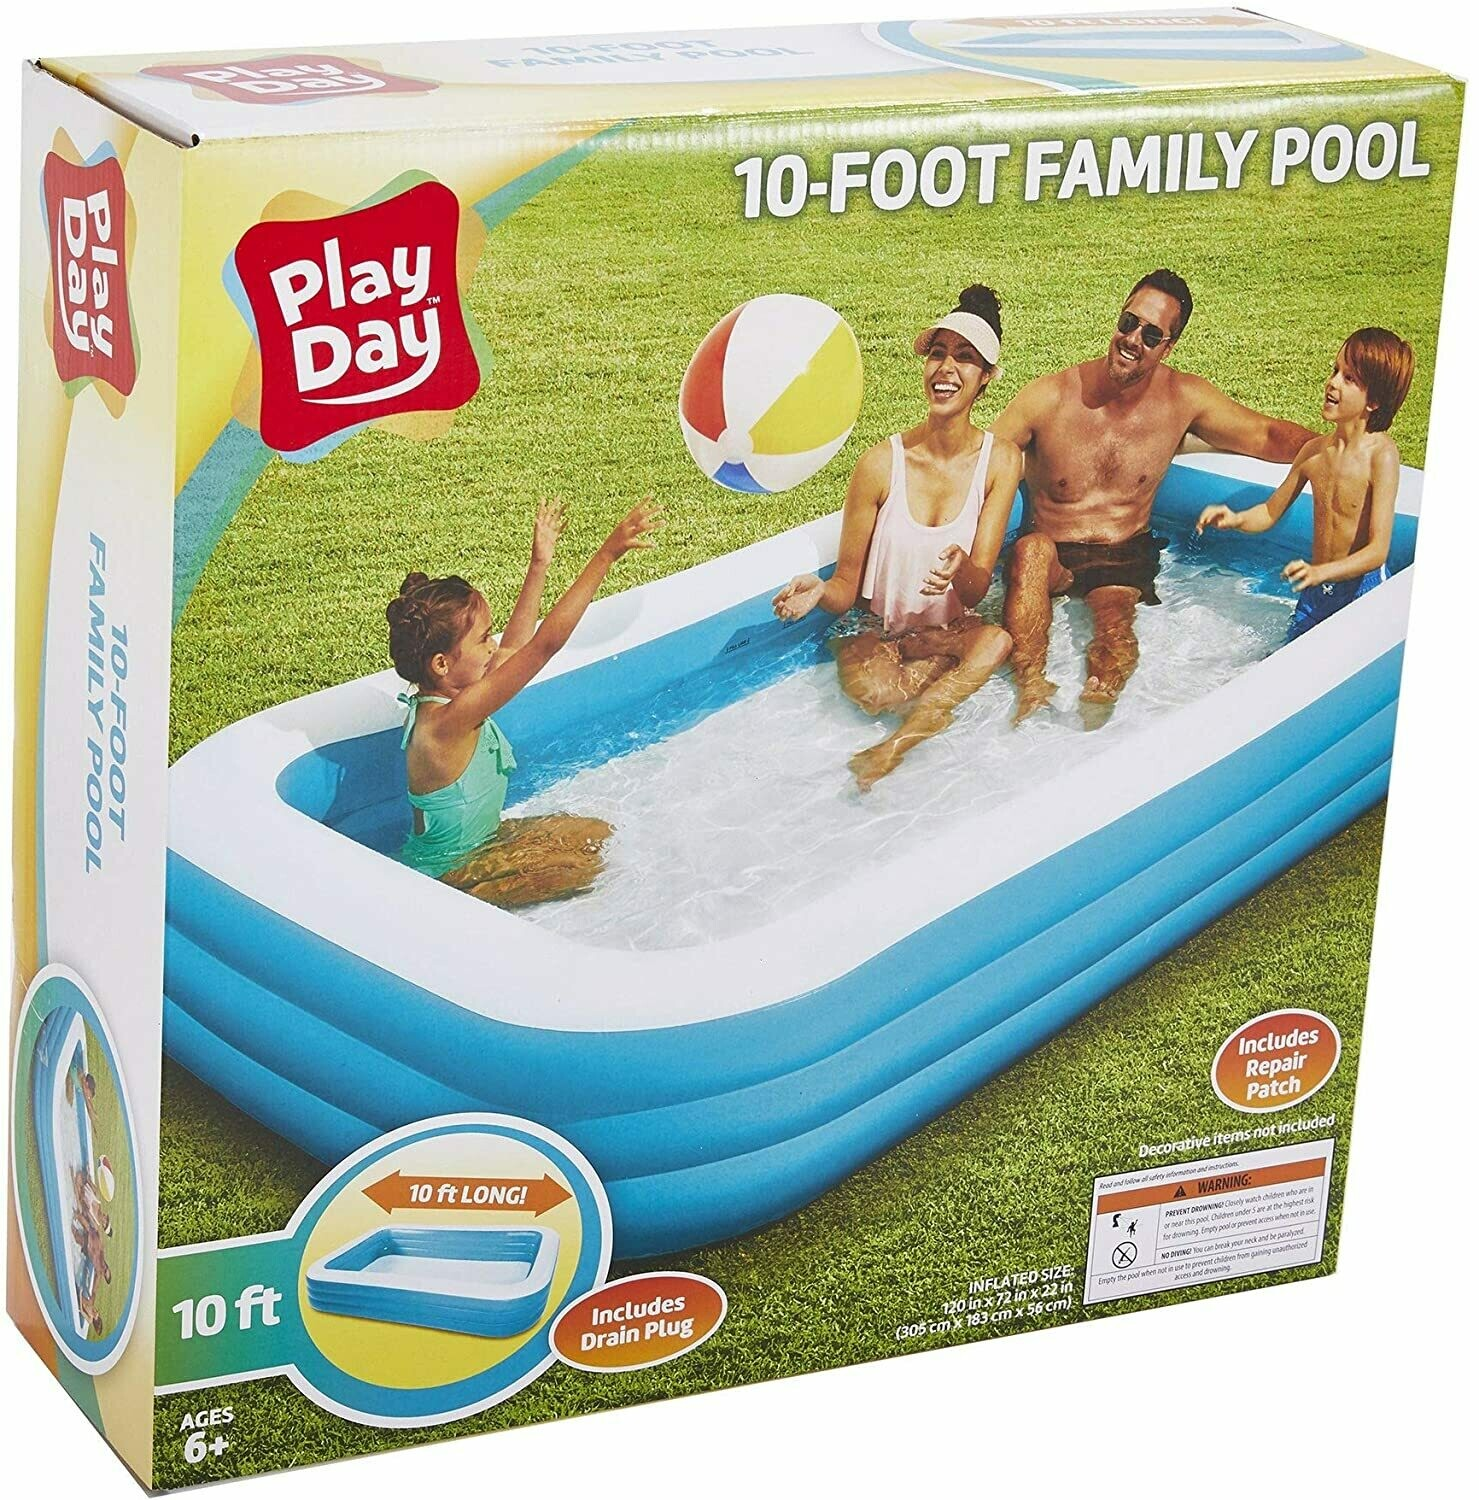 10 foot family pool. Lowest Price. Best Seller 2020